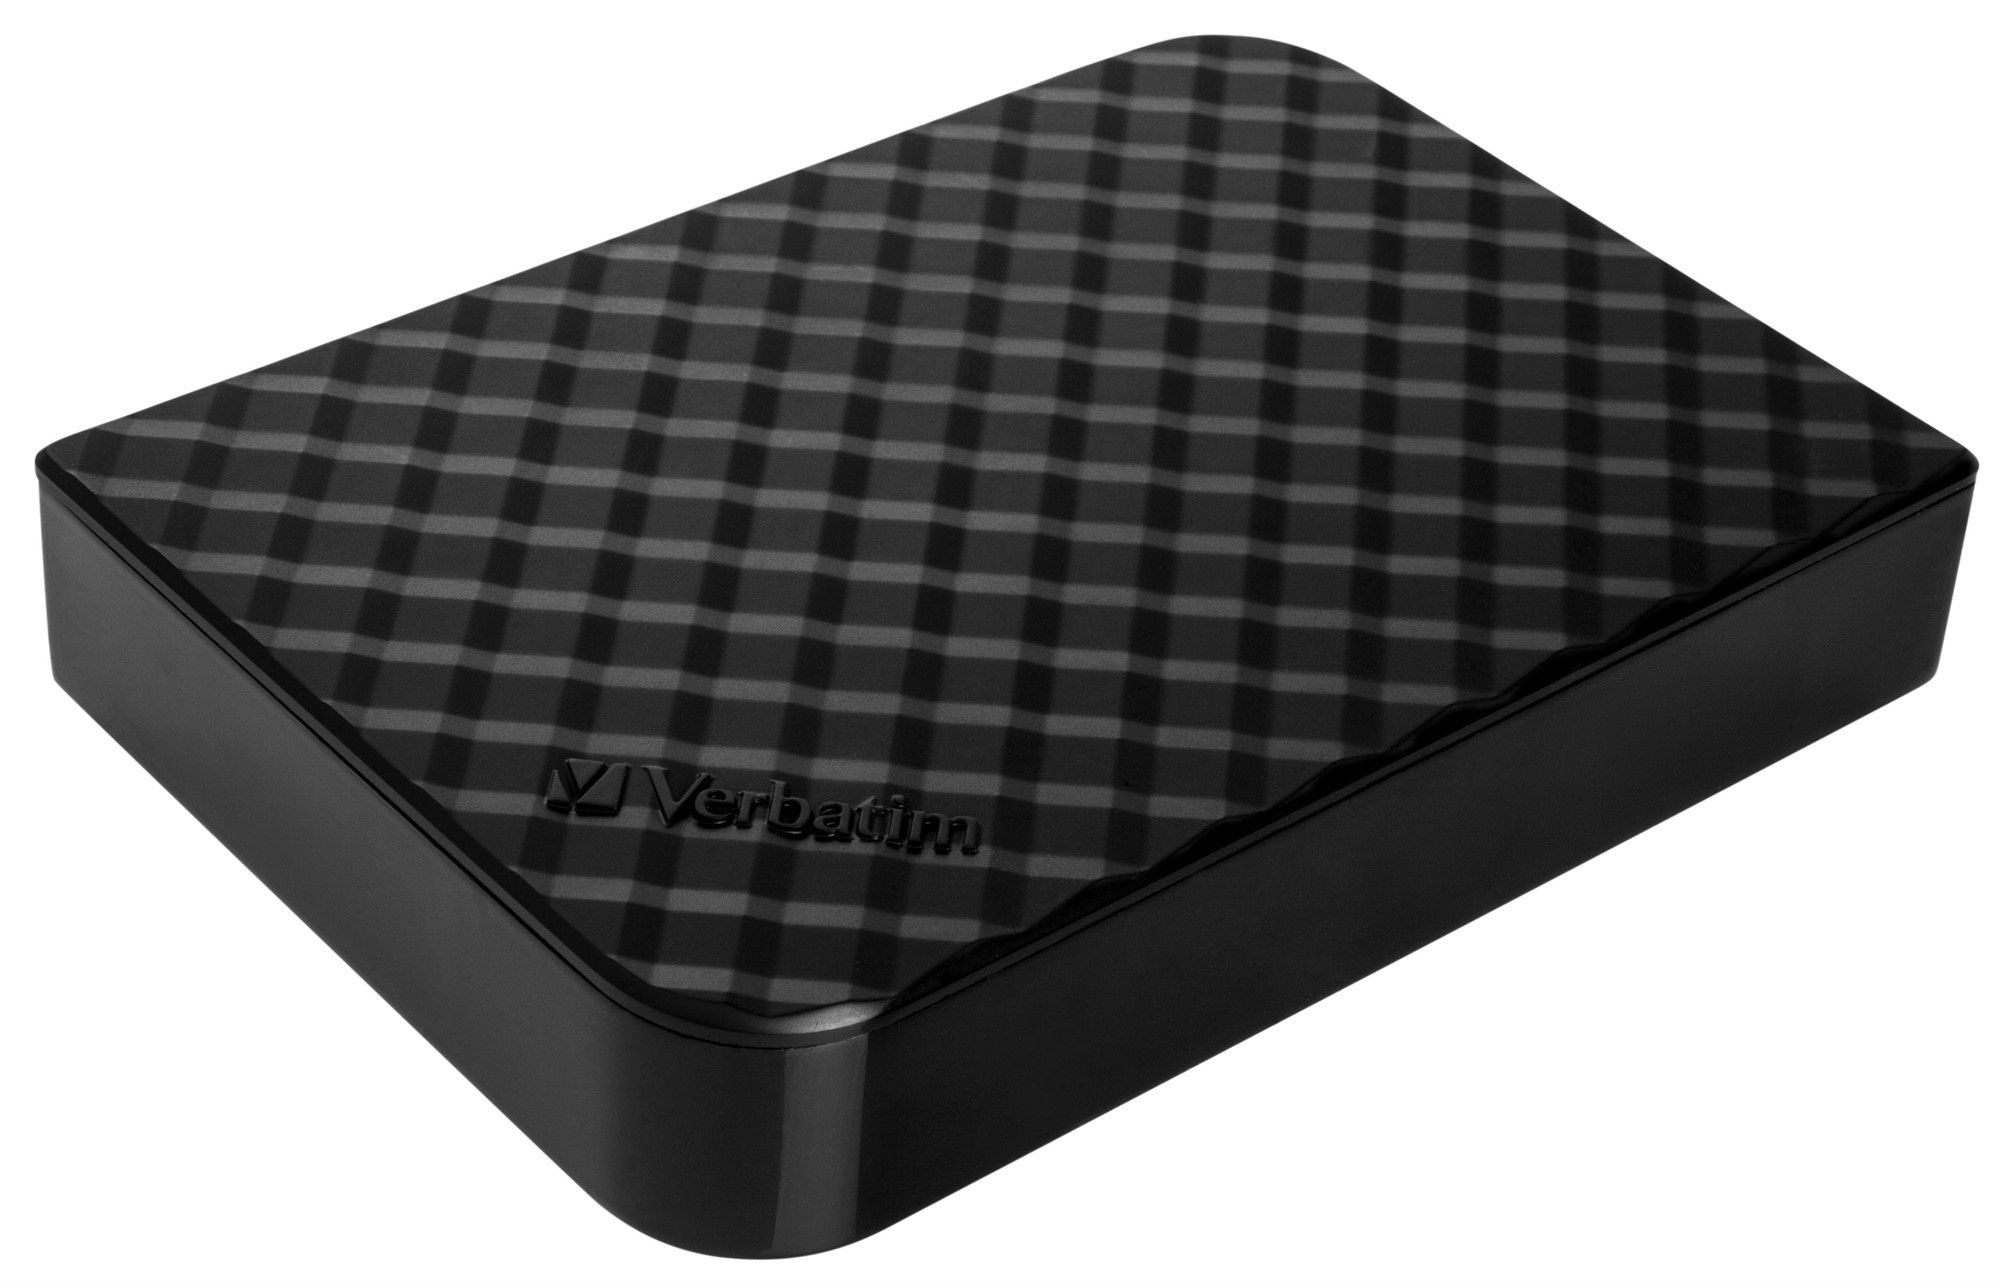 VERBATIM 47683 STORE 'N' SAVE 2000GB BLACK EXTERNAL HARD DRIVE